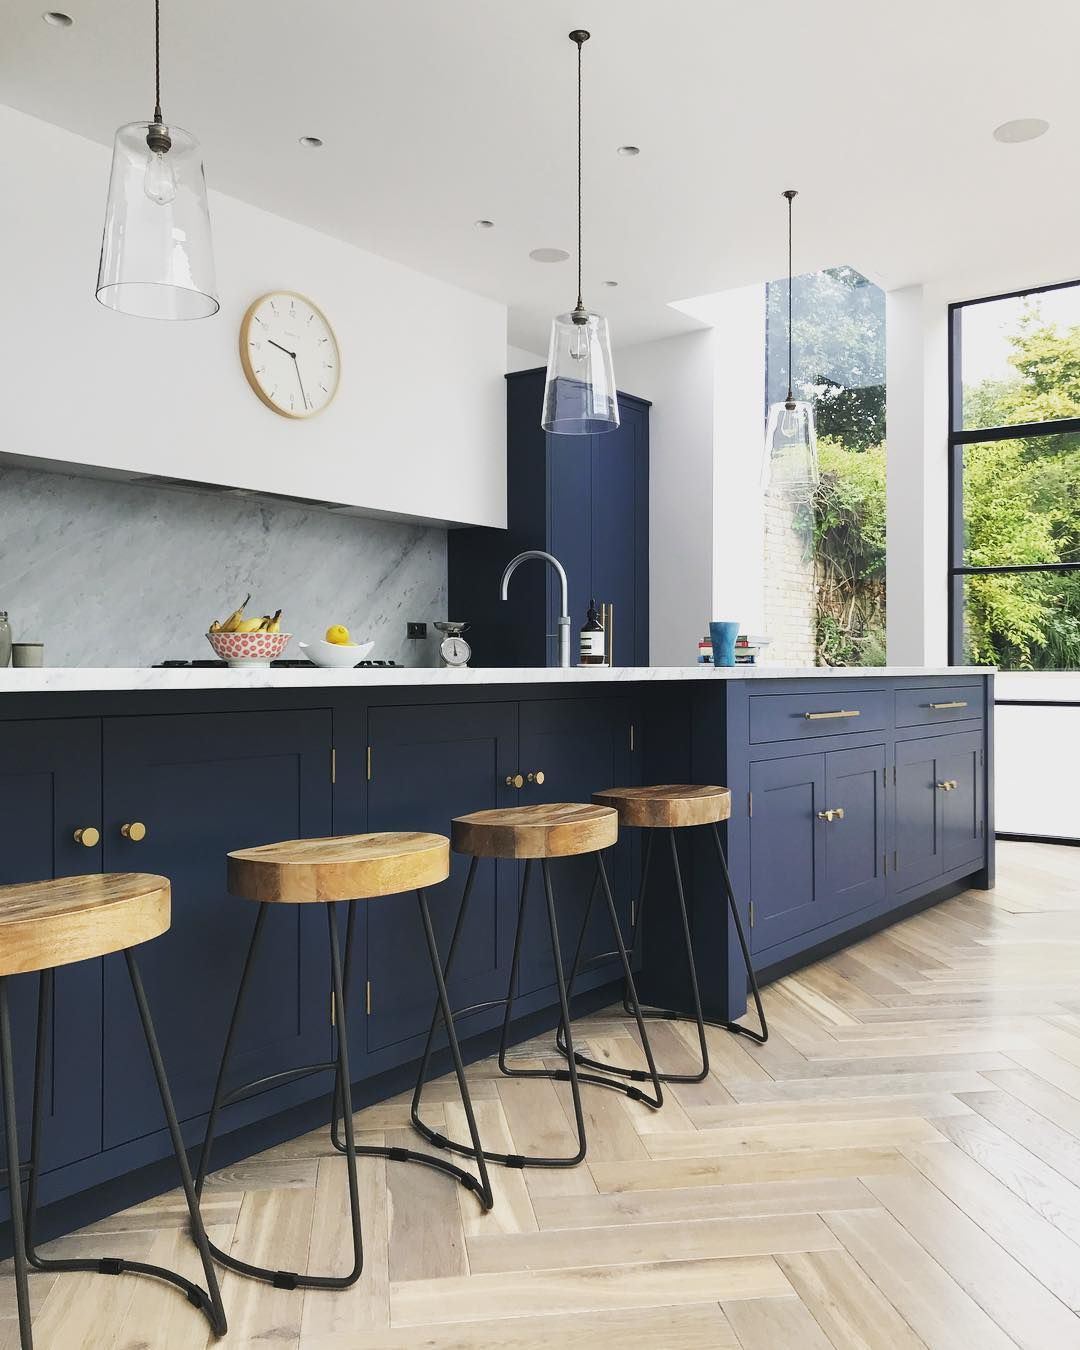 navy marble and brass kitchen decor with images kitchen remodel layout farmhouse kitchen on kitchen decor navy id=72561